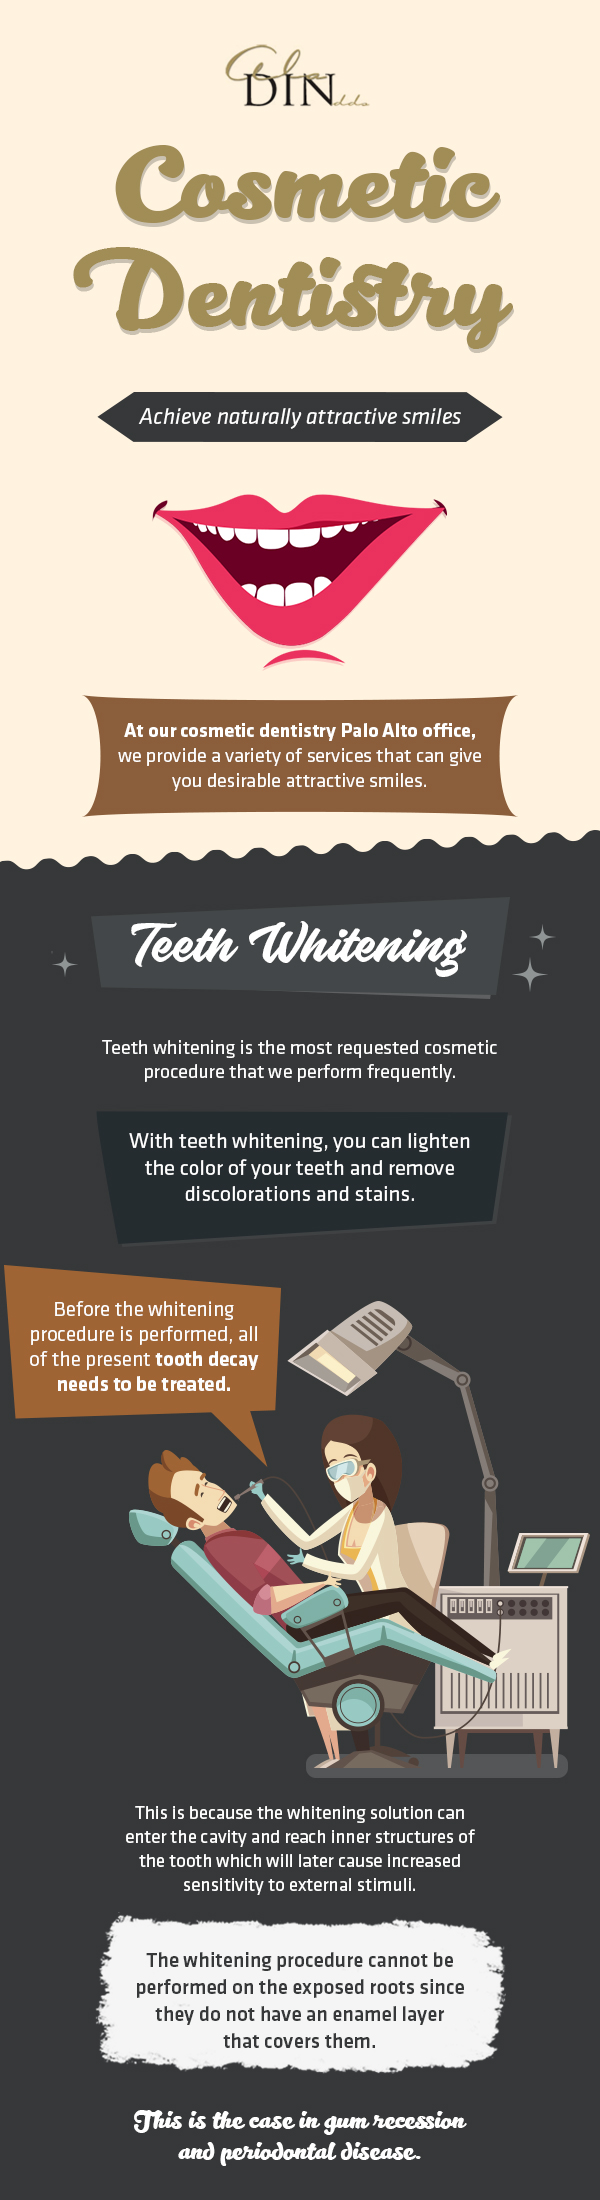 Achieve Naturally Attractive Smiles with Cosmetic Dentistry Services from Ala Din DDS in Palo Al ...